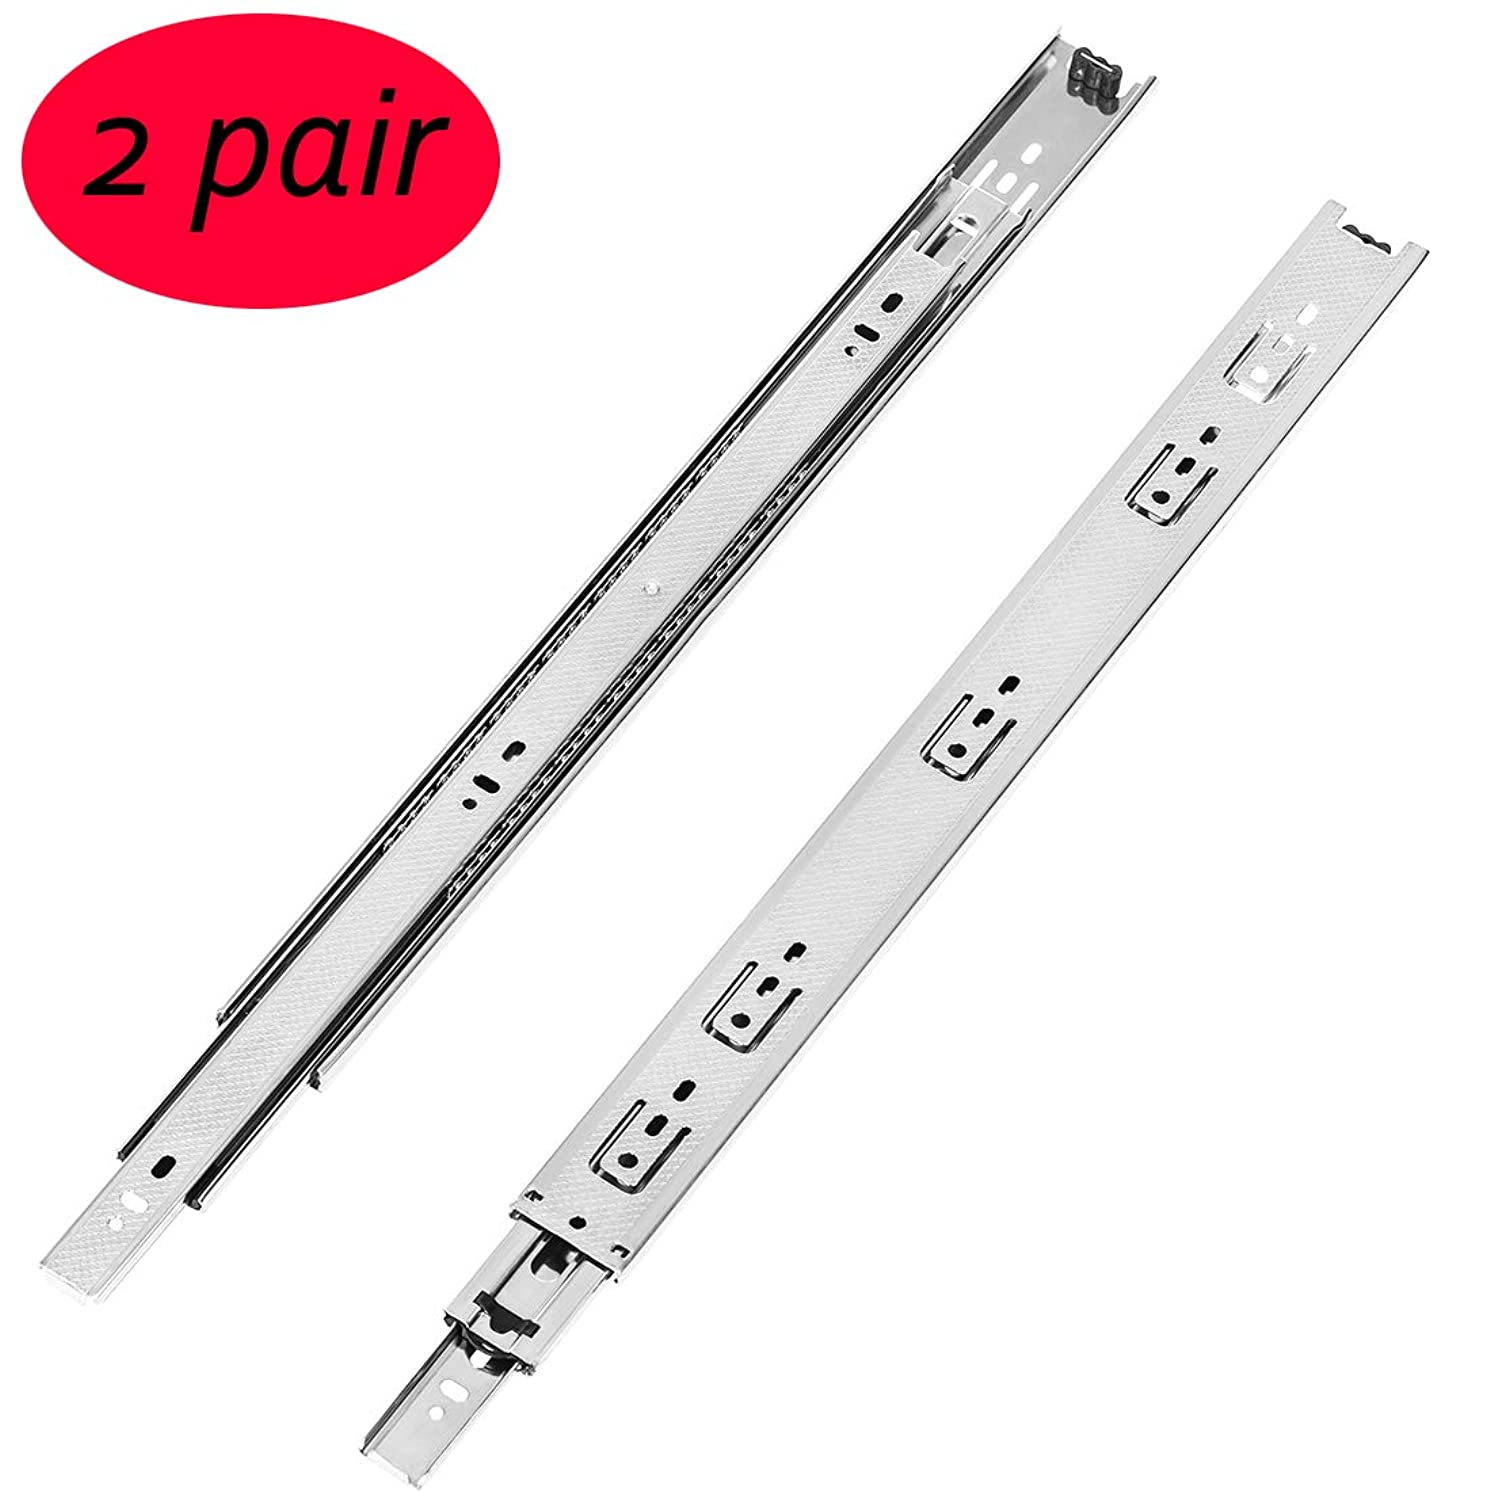 2 Pair of 20 Inch Full Extension Heavy Duty Drawer Slides,Lubrication Steel Ball Bearing